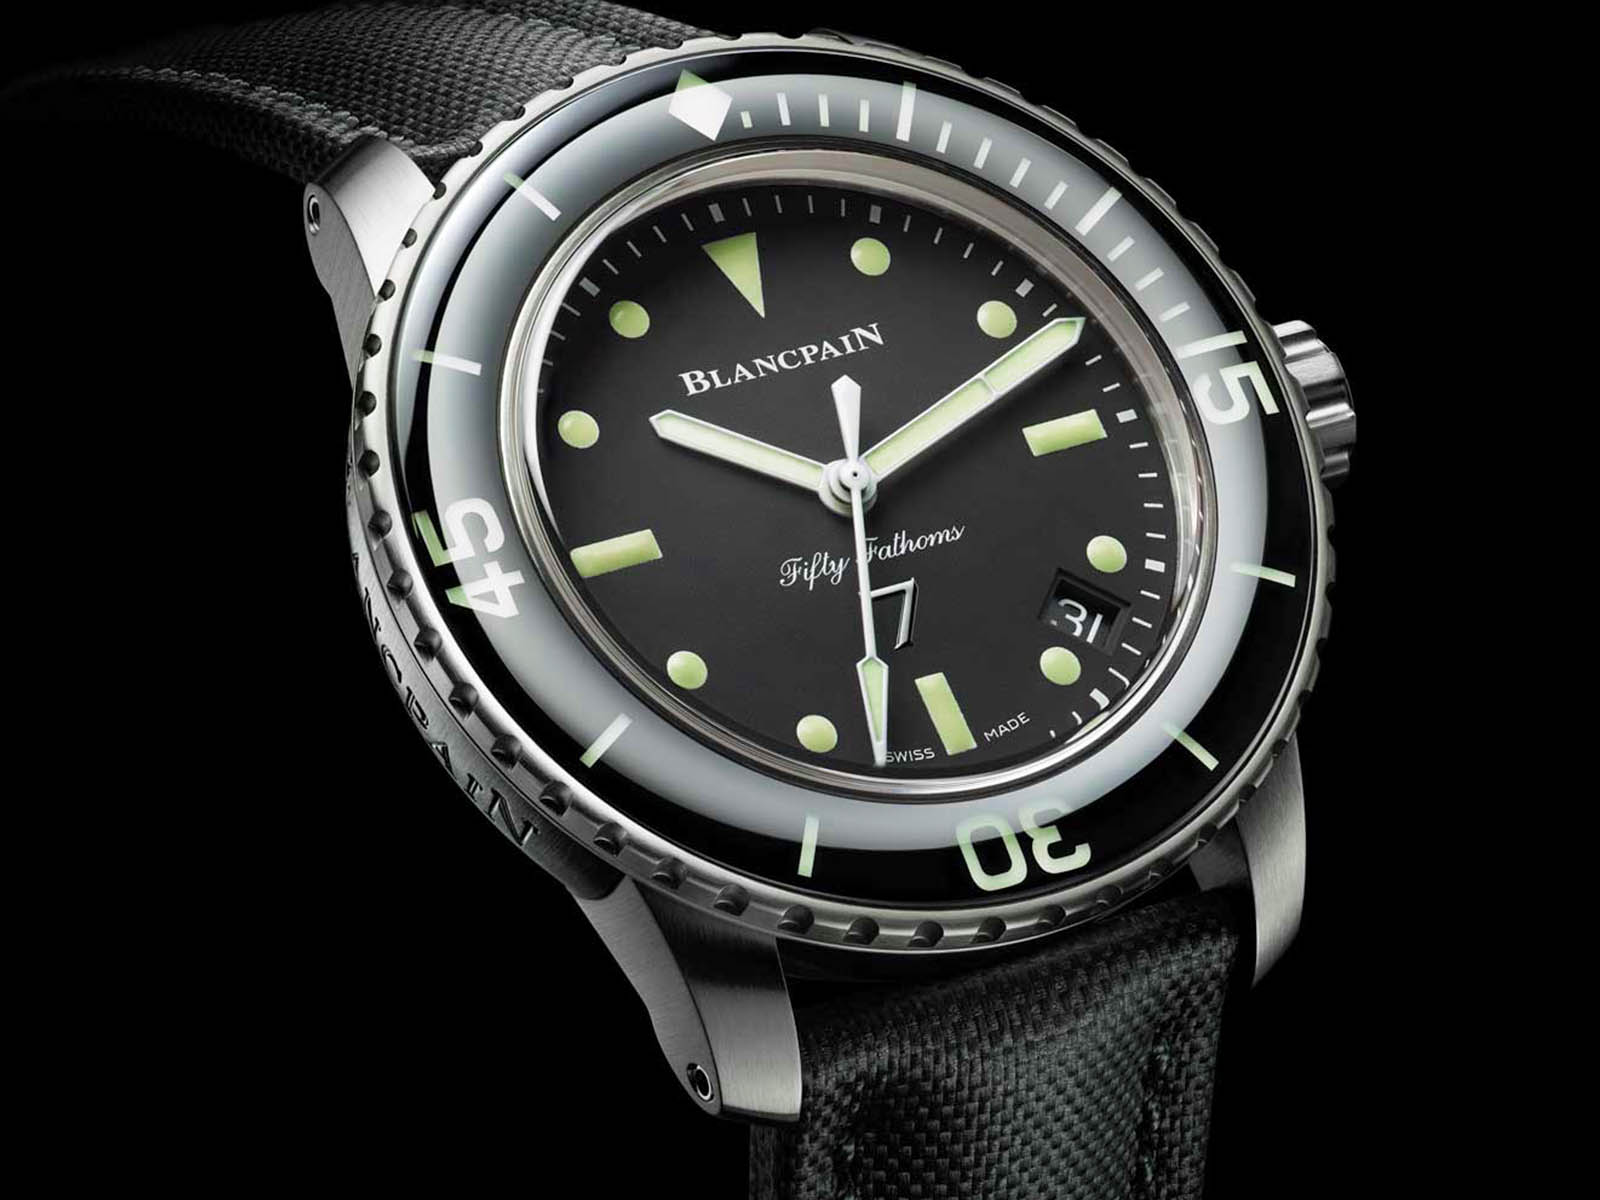 blancpain-fifty-fathoms-nageurs-de-combat-limited-edition-1.jpg